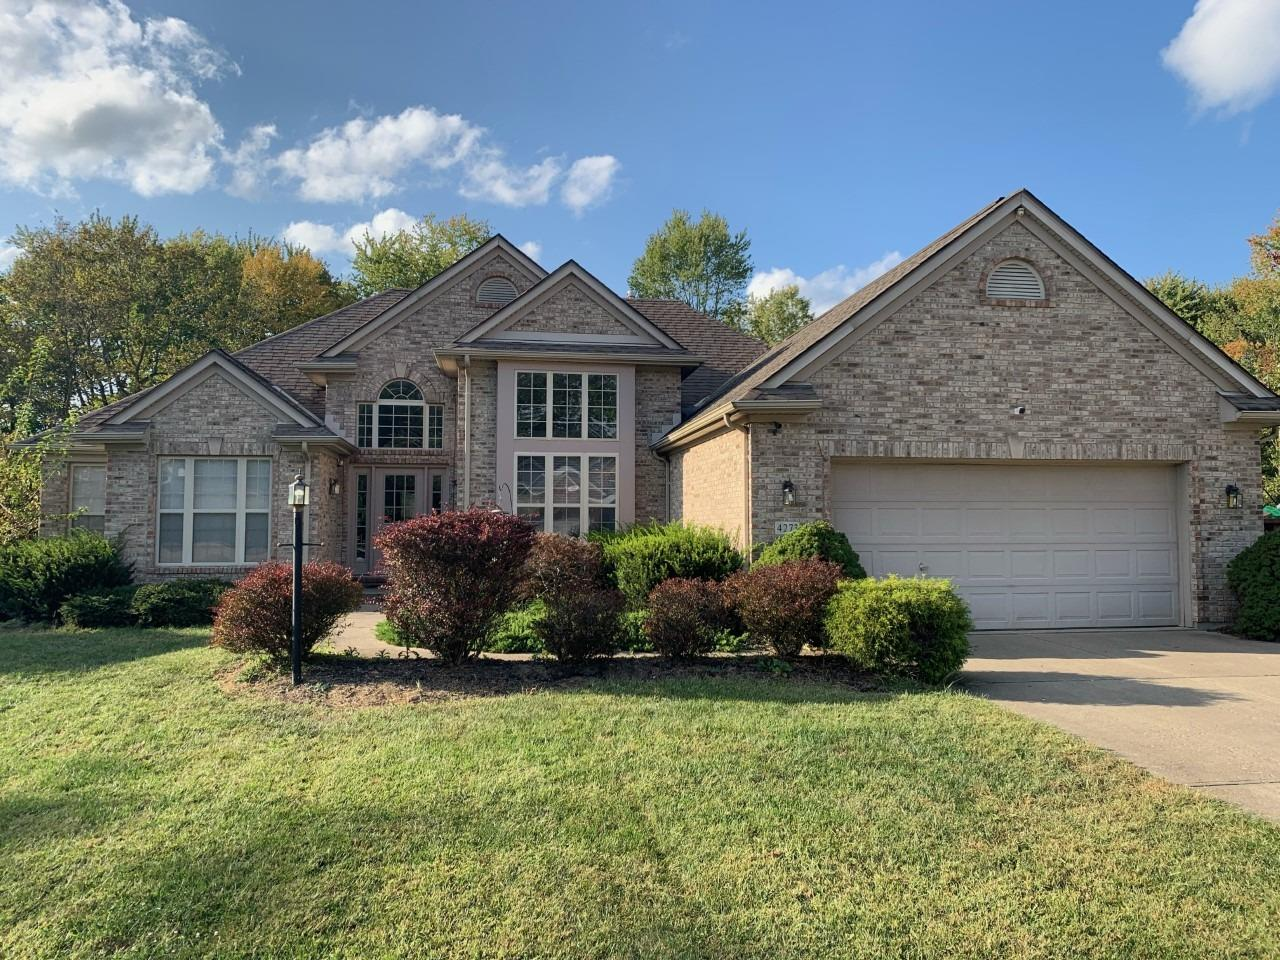 Property for sale at 4273 Trotters Way, Batavia Twp,  Ohio 45103